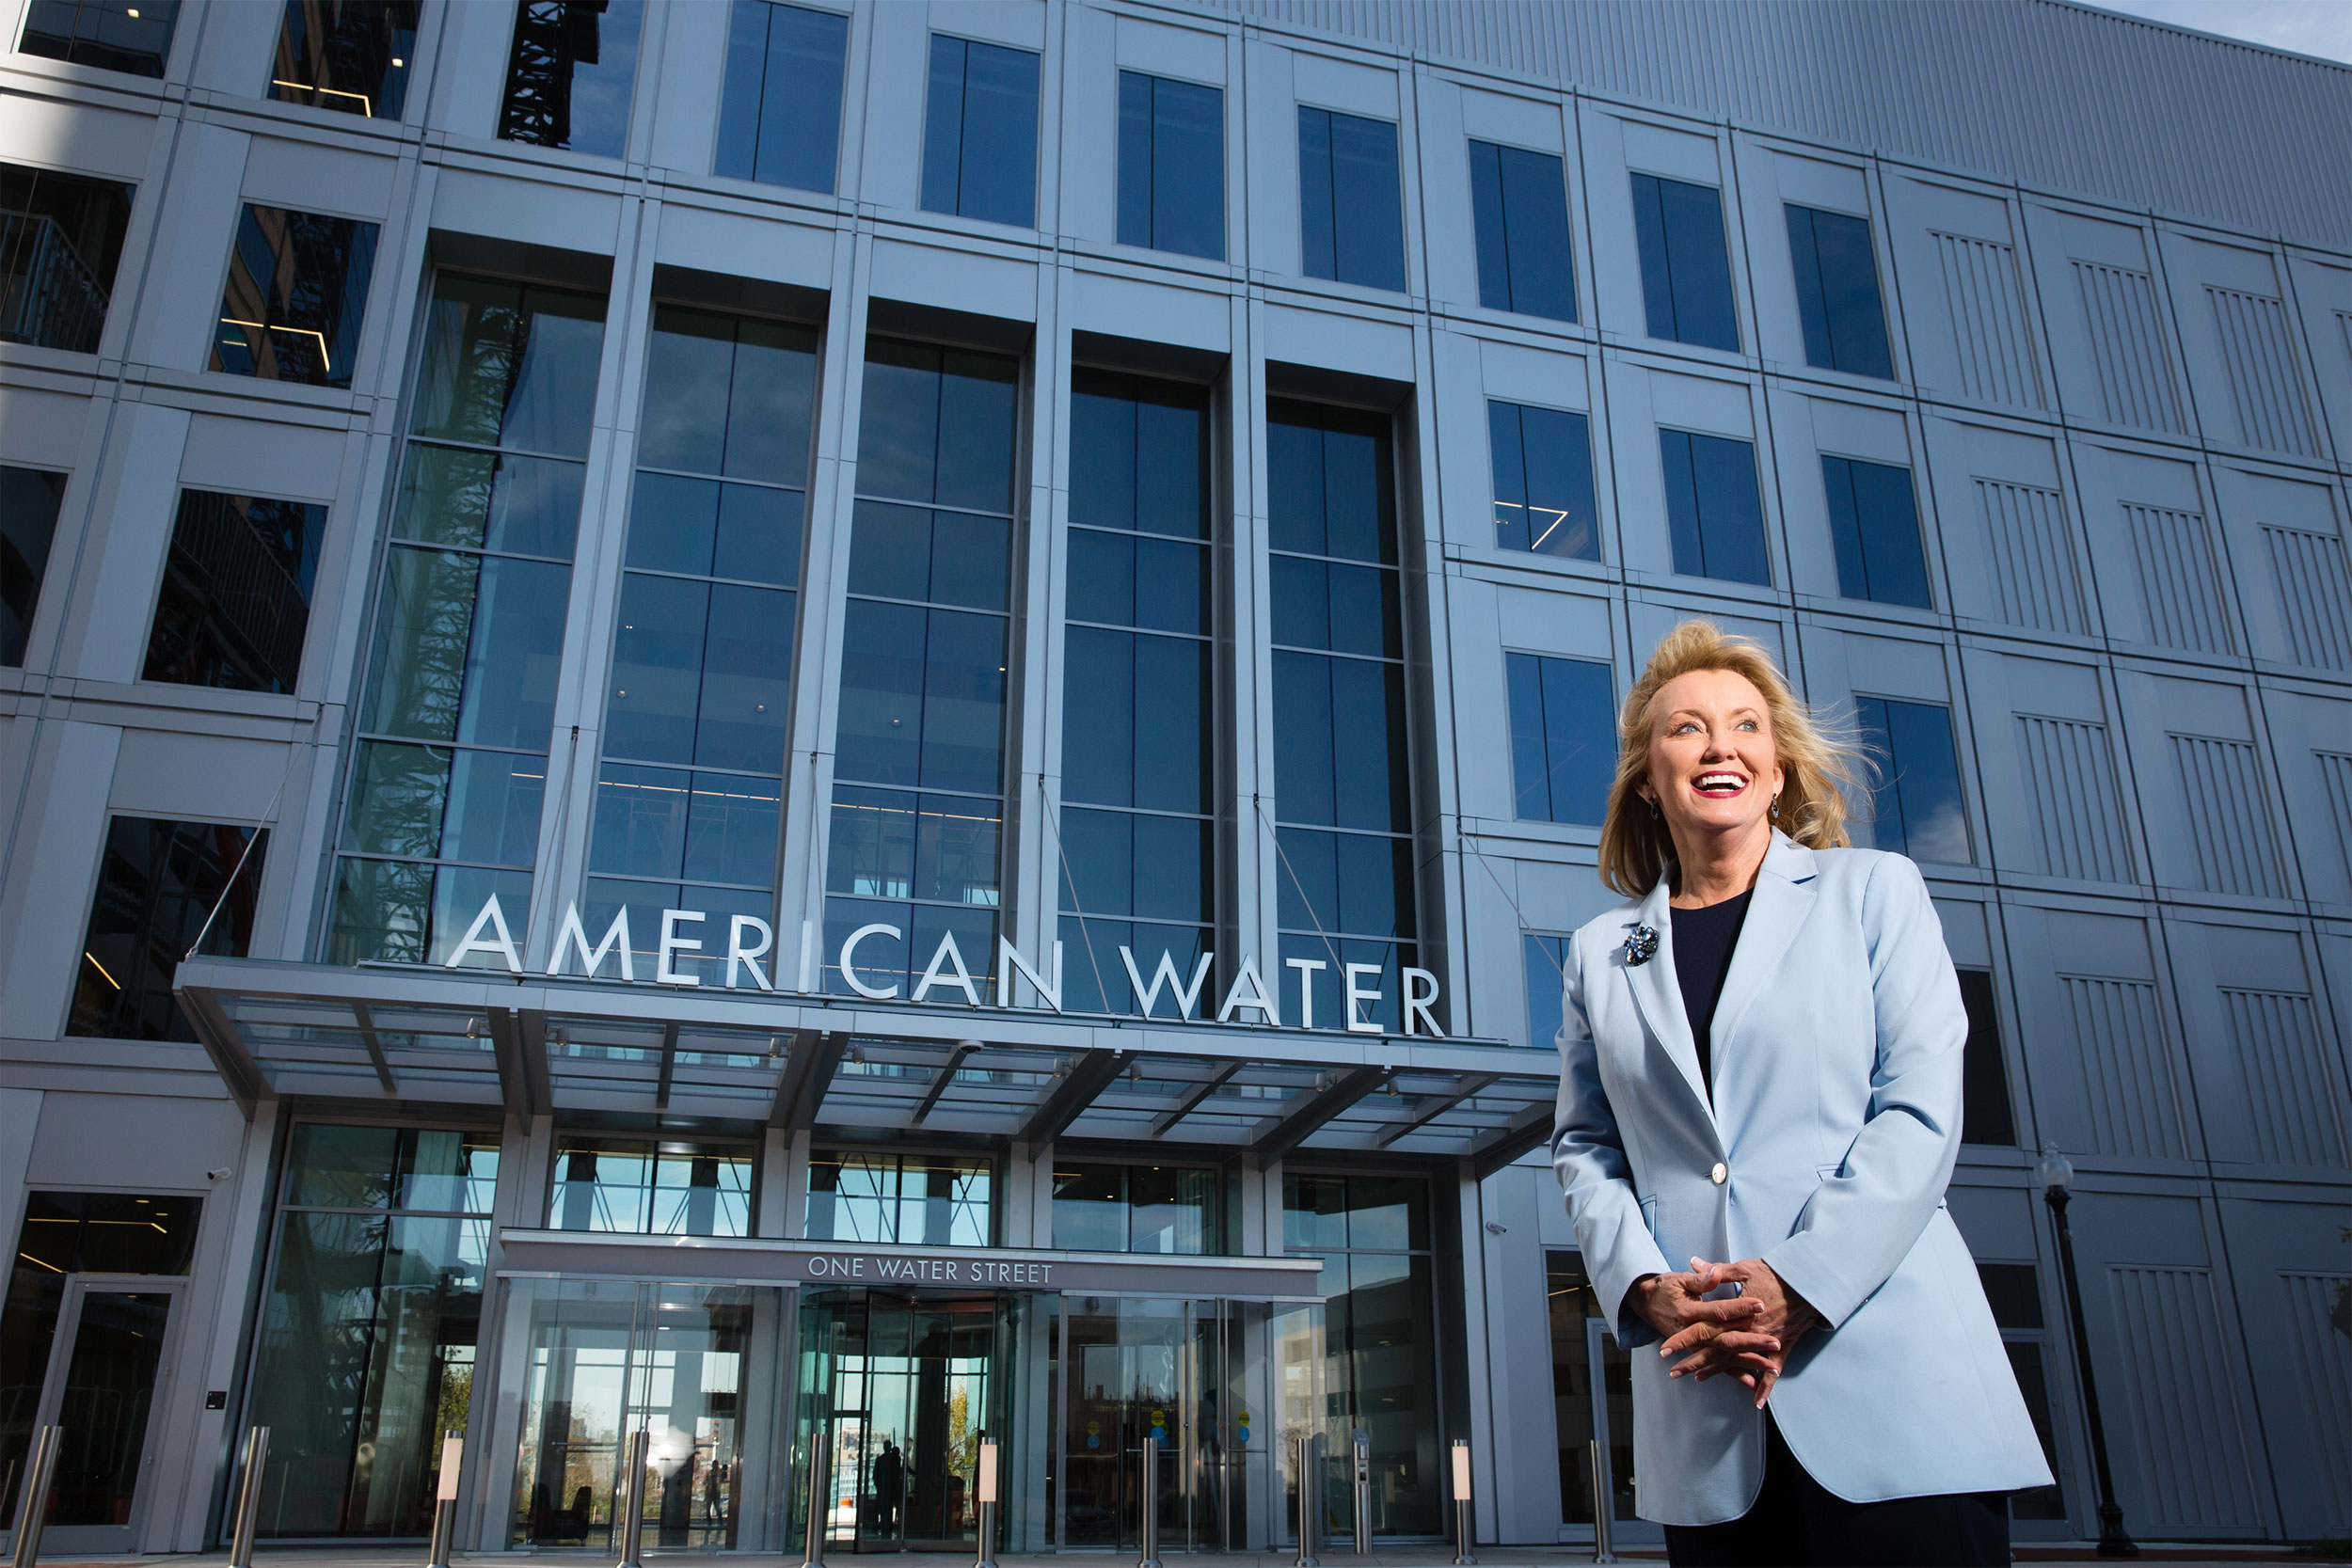 philadelphia-delaware-magazine-photogapher-american-water-ceo-2018